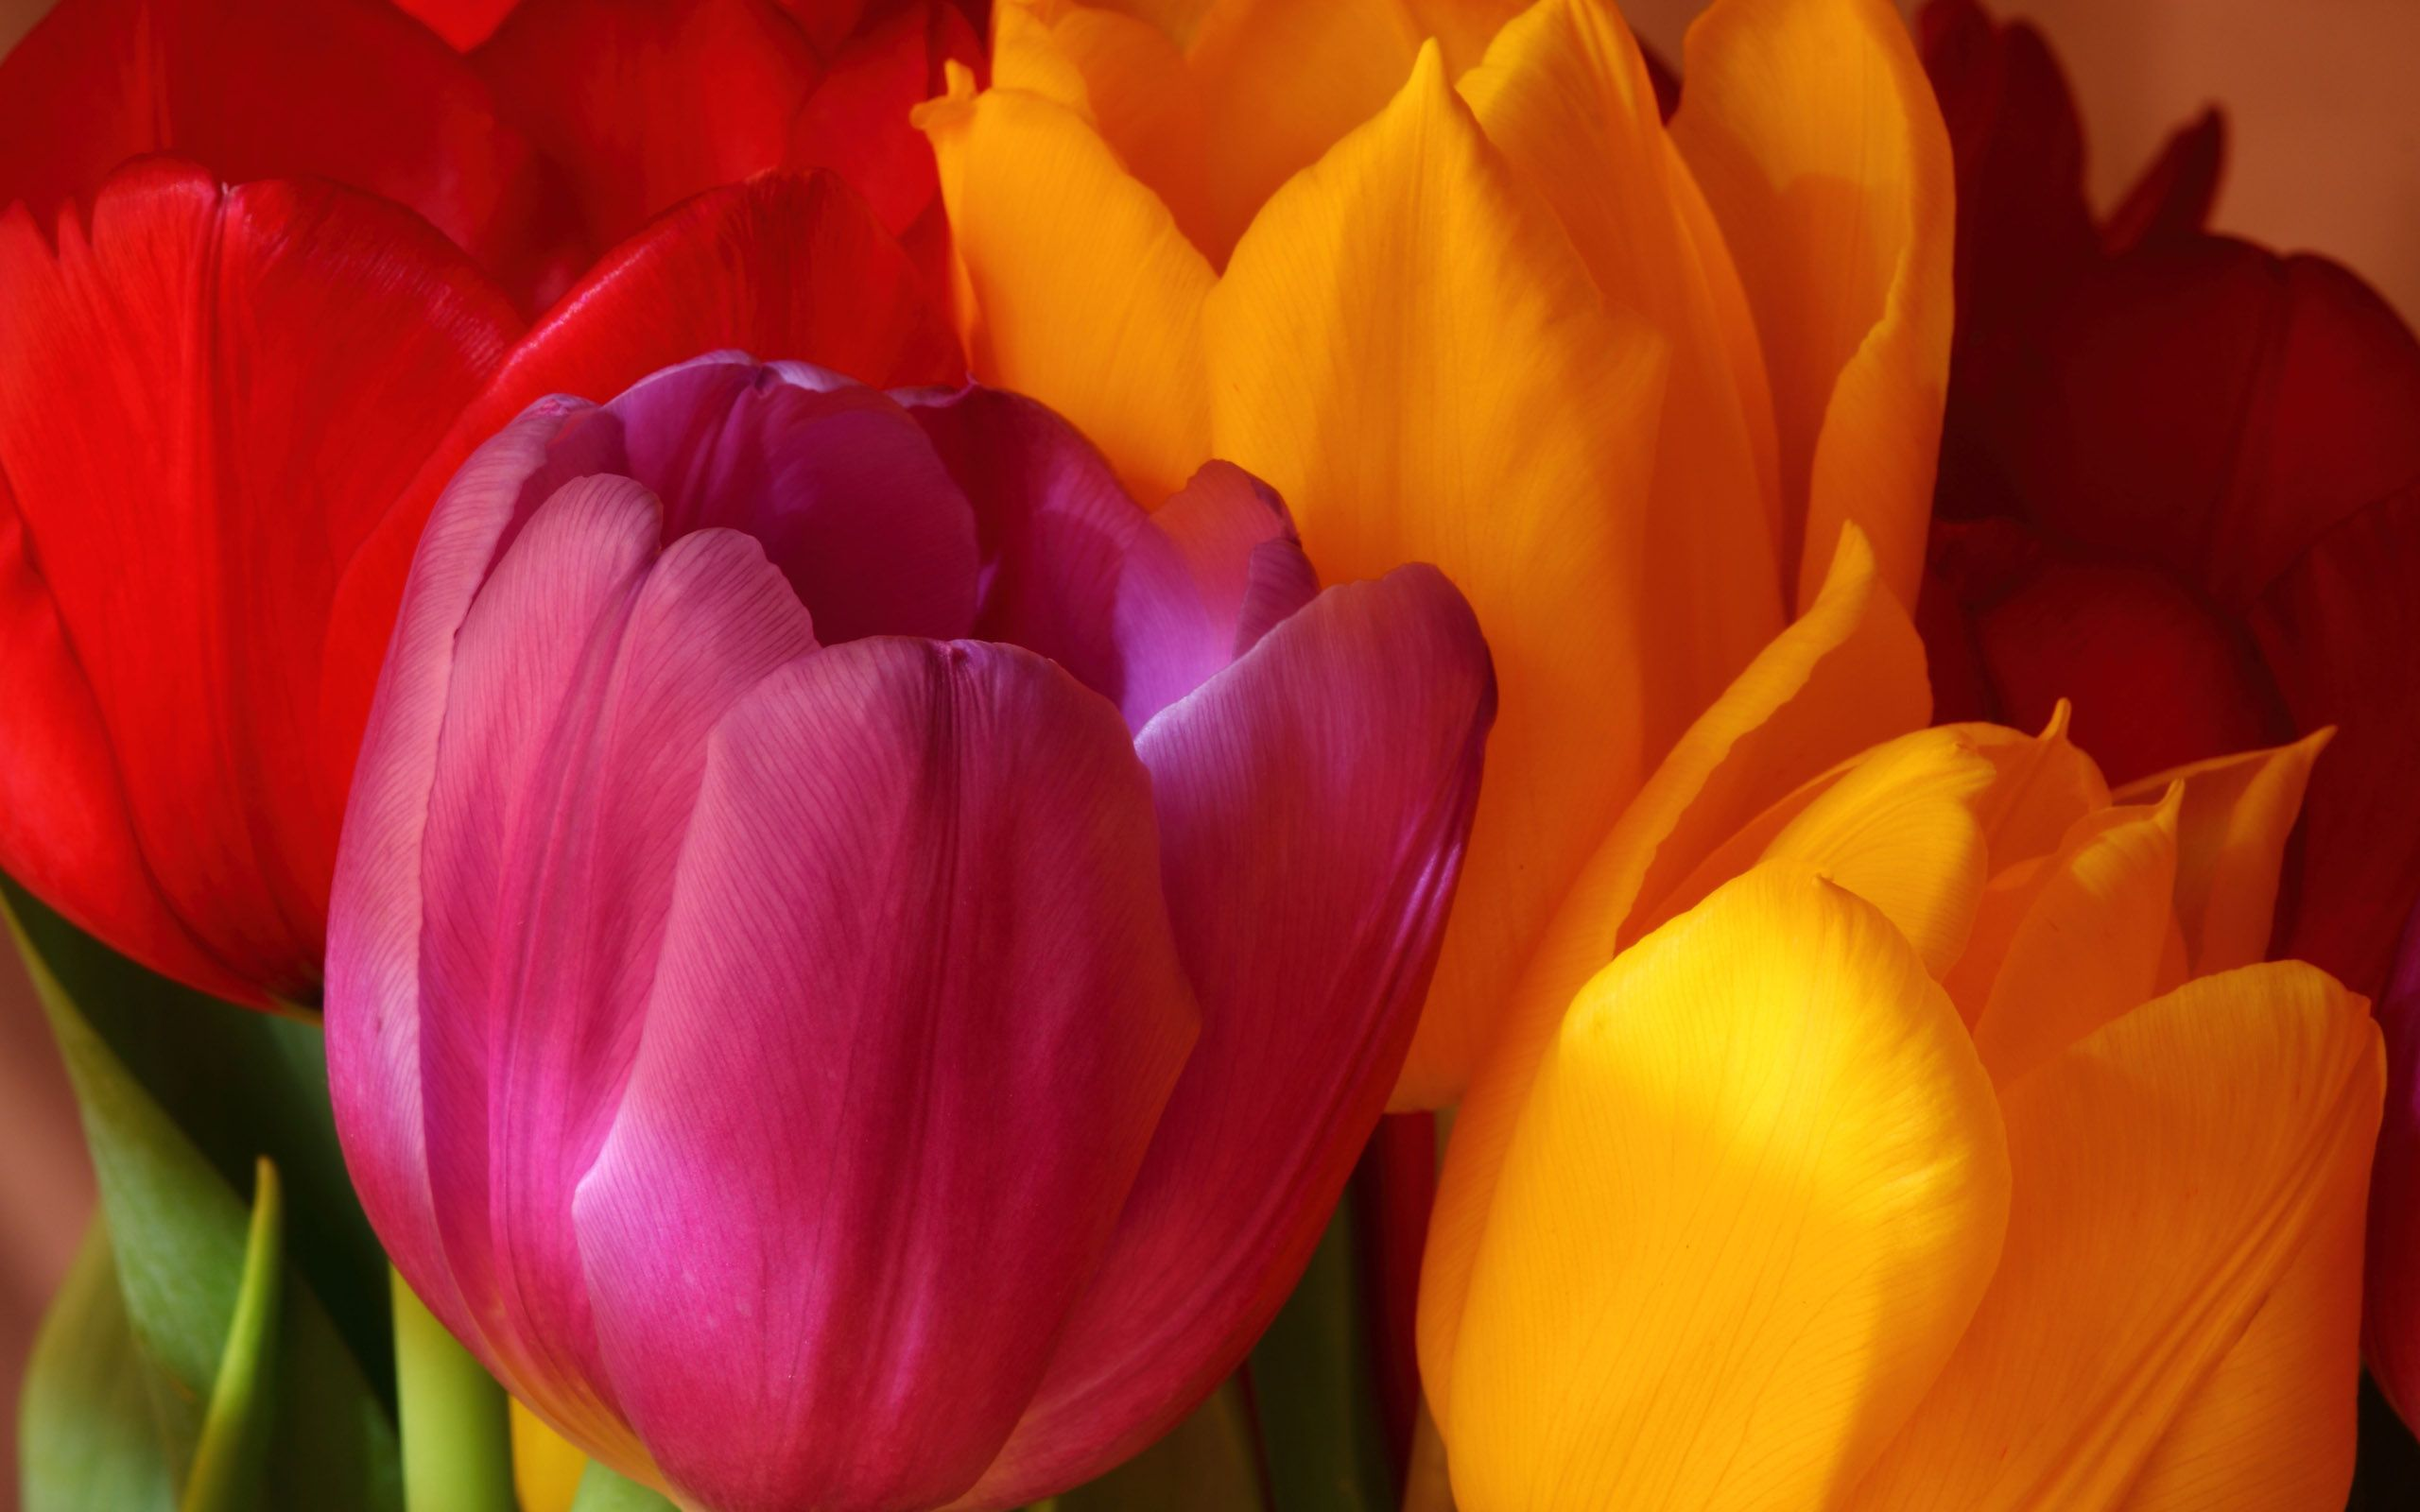 Colourful Flowers Nature Tulips Nature Tulips Flowers Tulip Flower Pictures Tulips